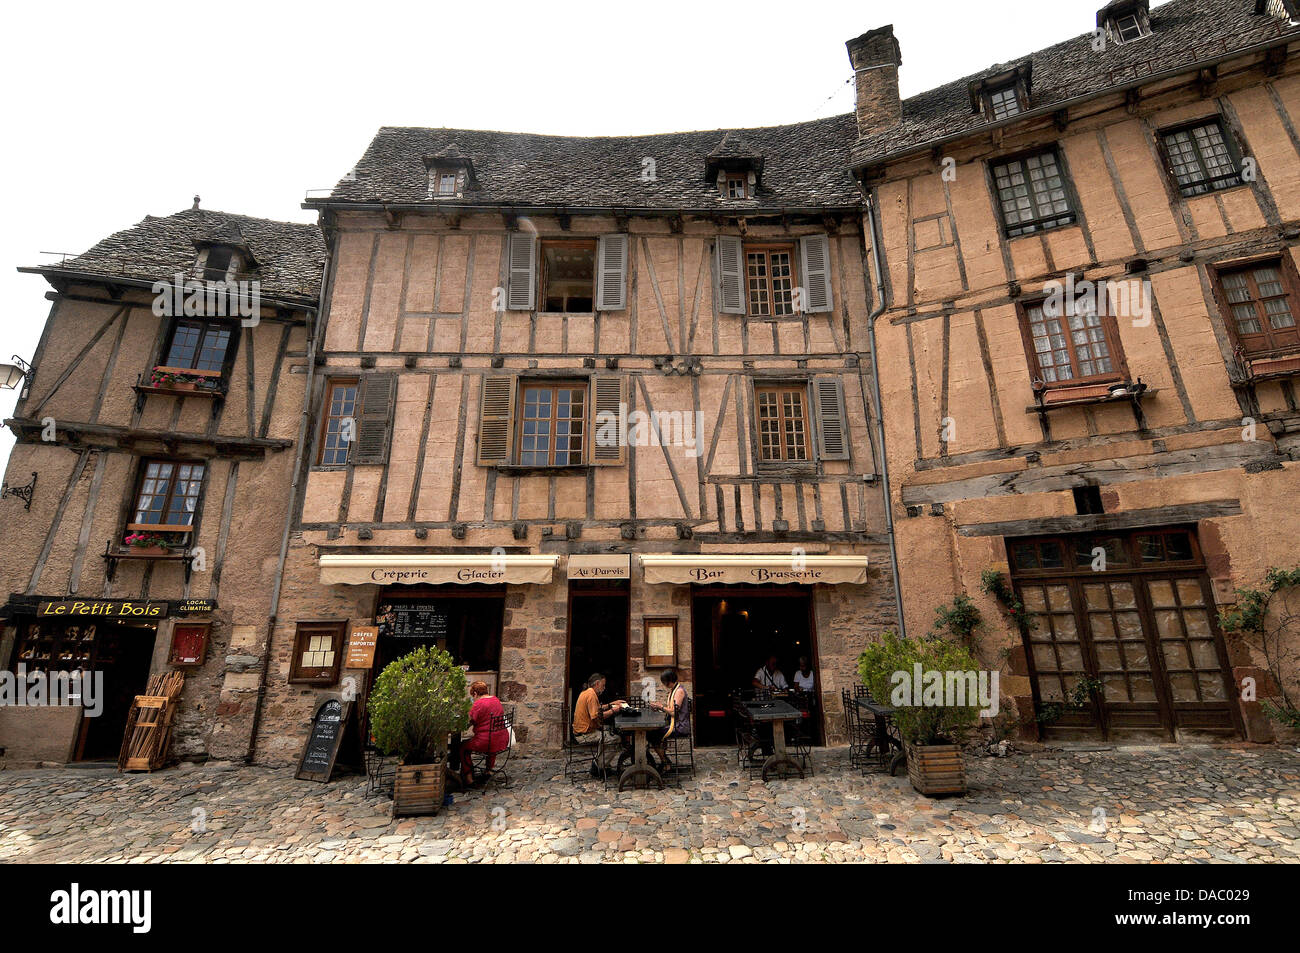 Village of Conques, Aveyron, Midi-Pyrenees, France, Europe - Stock Image